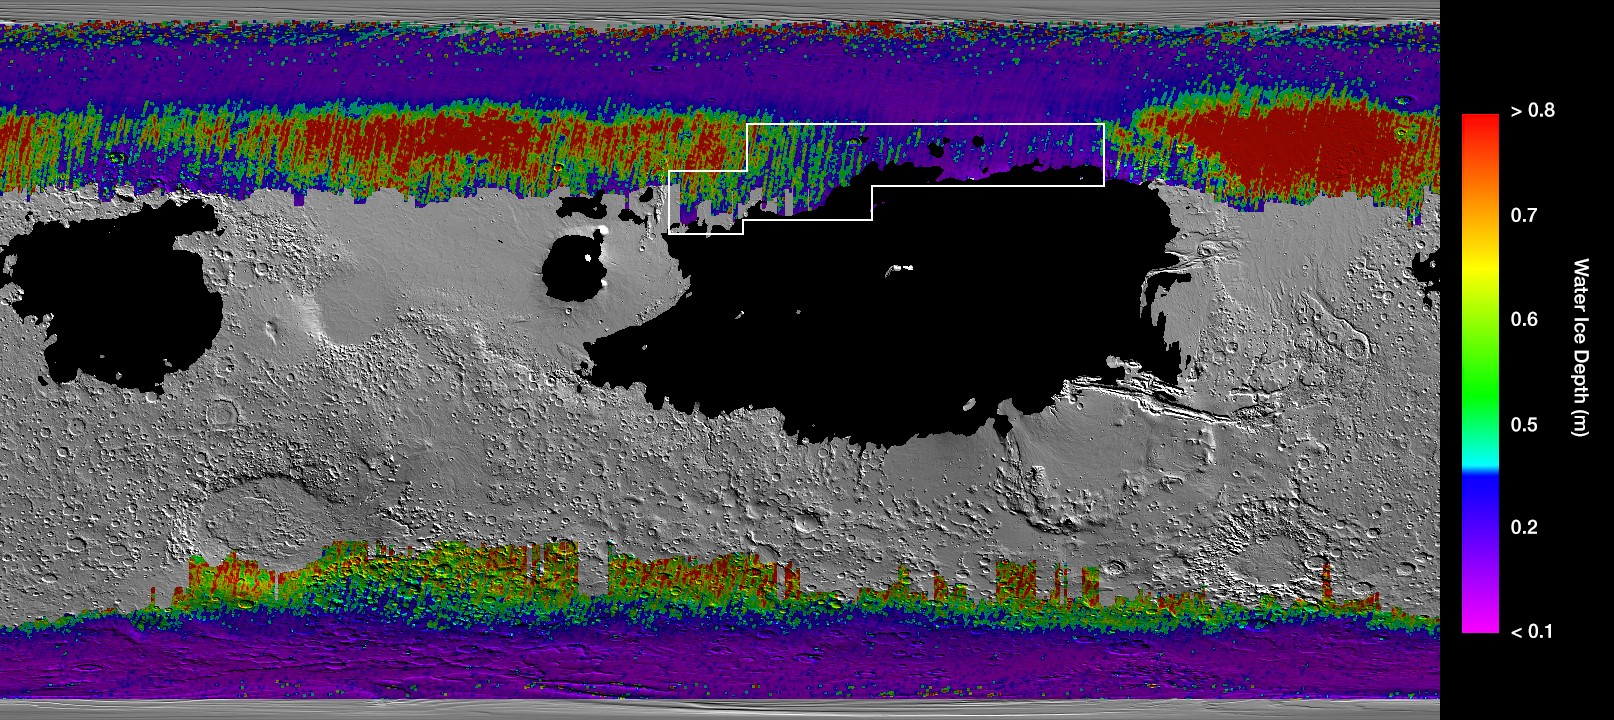 Mars has buried treasure in the form of water ice